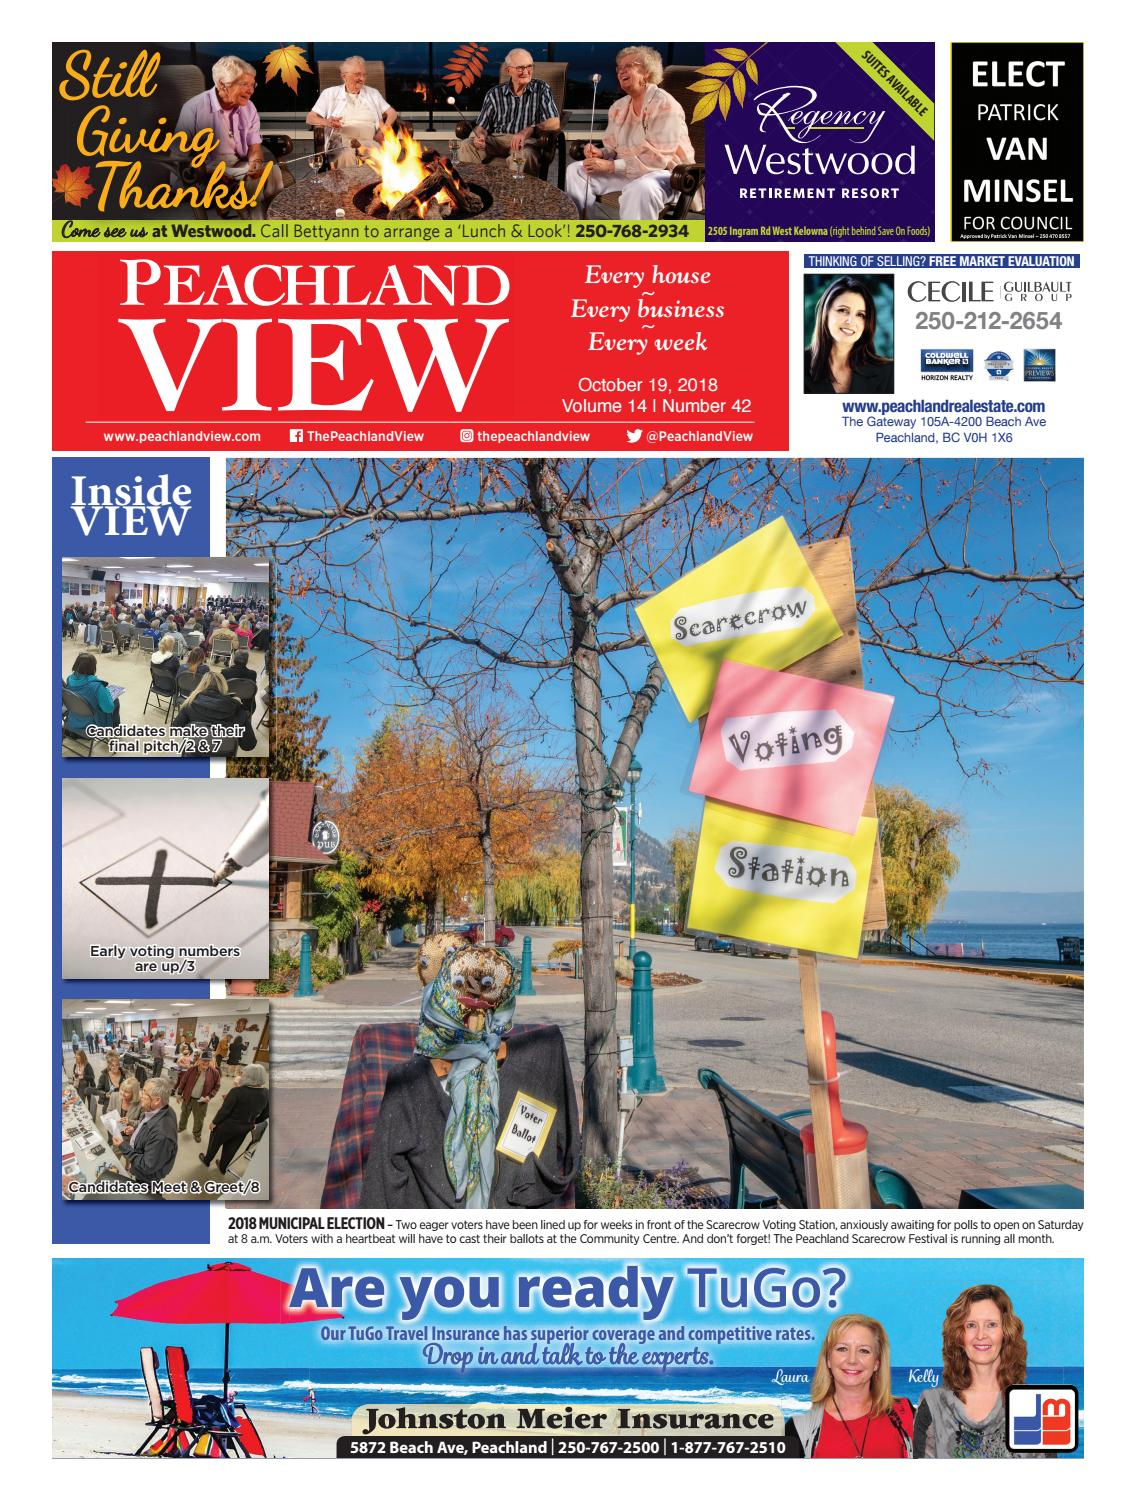 706bd8836e The View - Oct. 19 by Mike Rieger - issuu